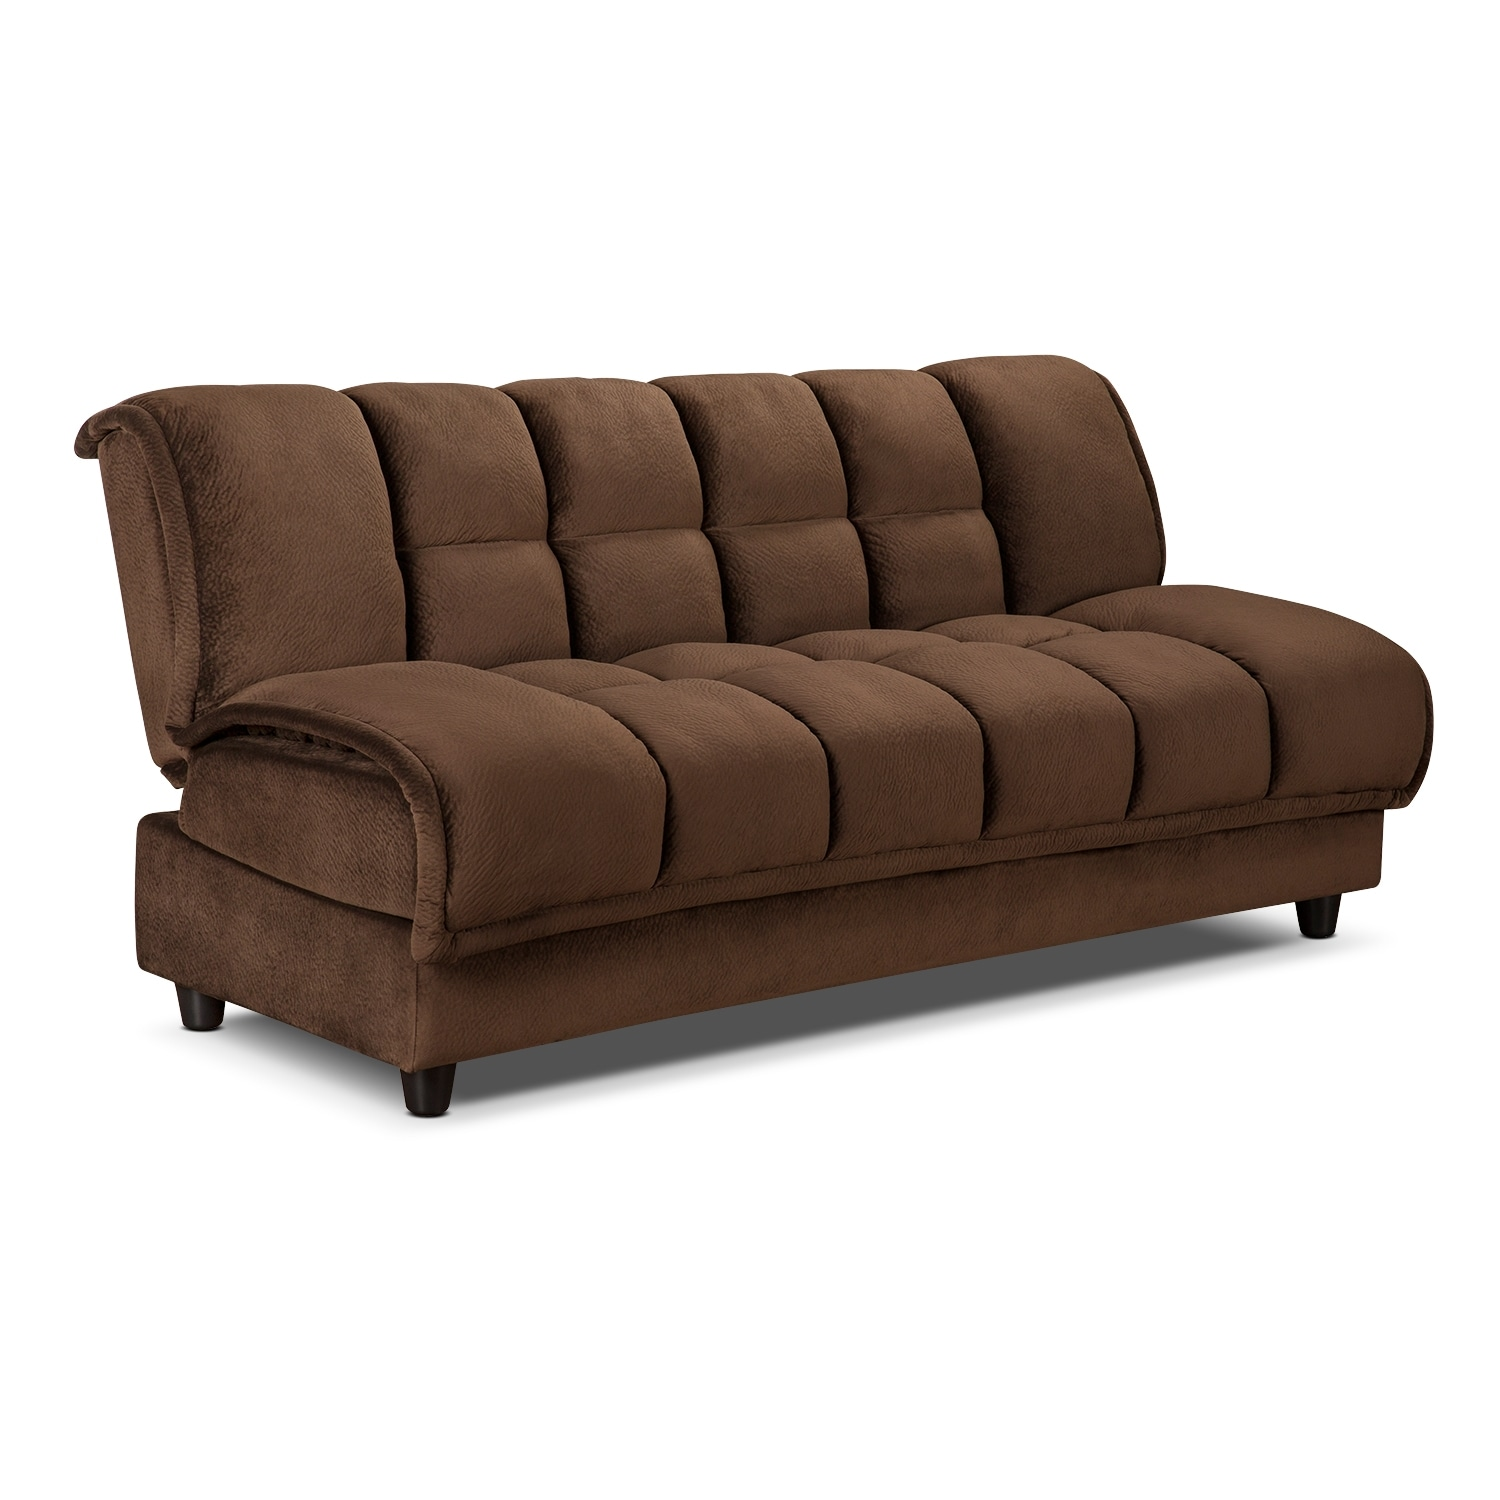 Bennett futon sofa bed espresso american signature furniture Bed divan